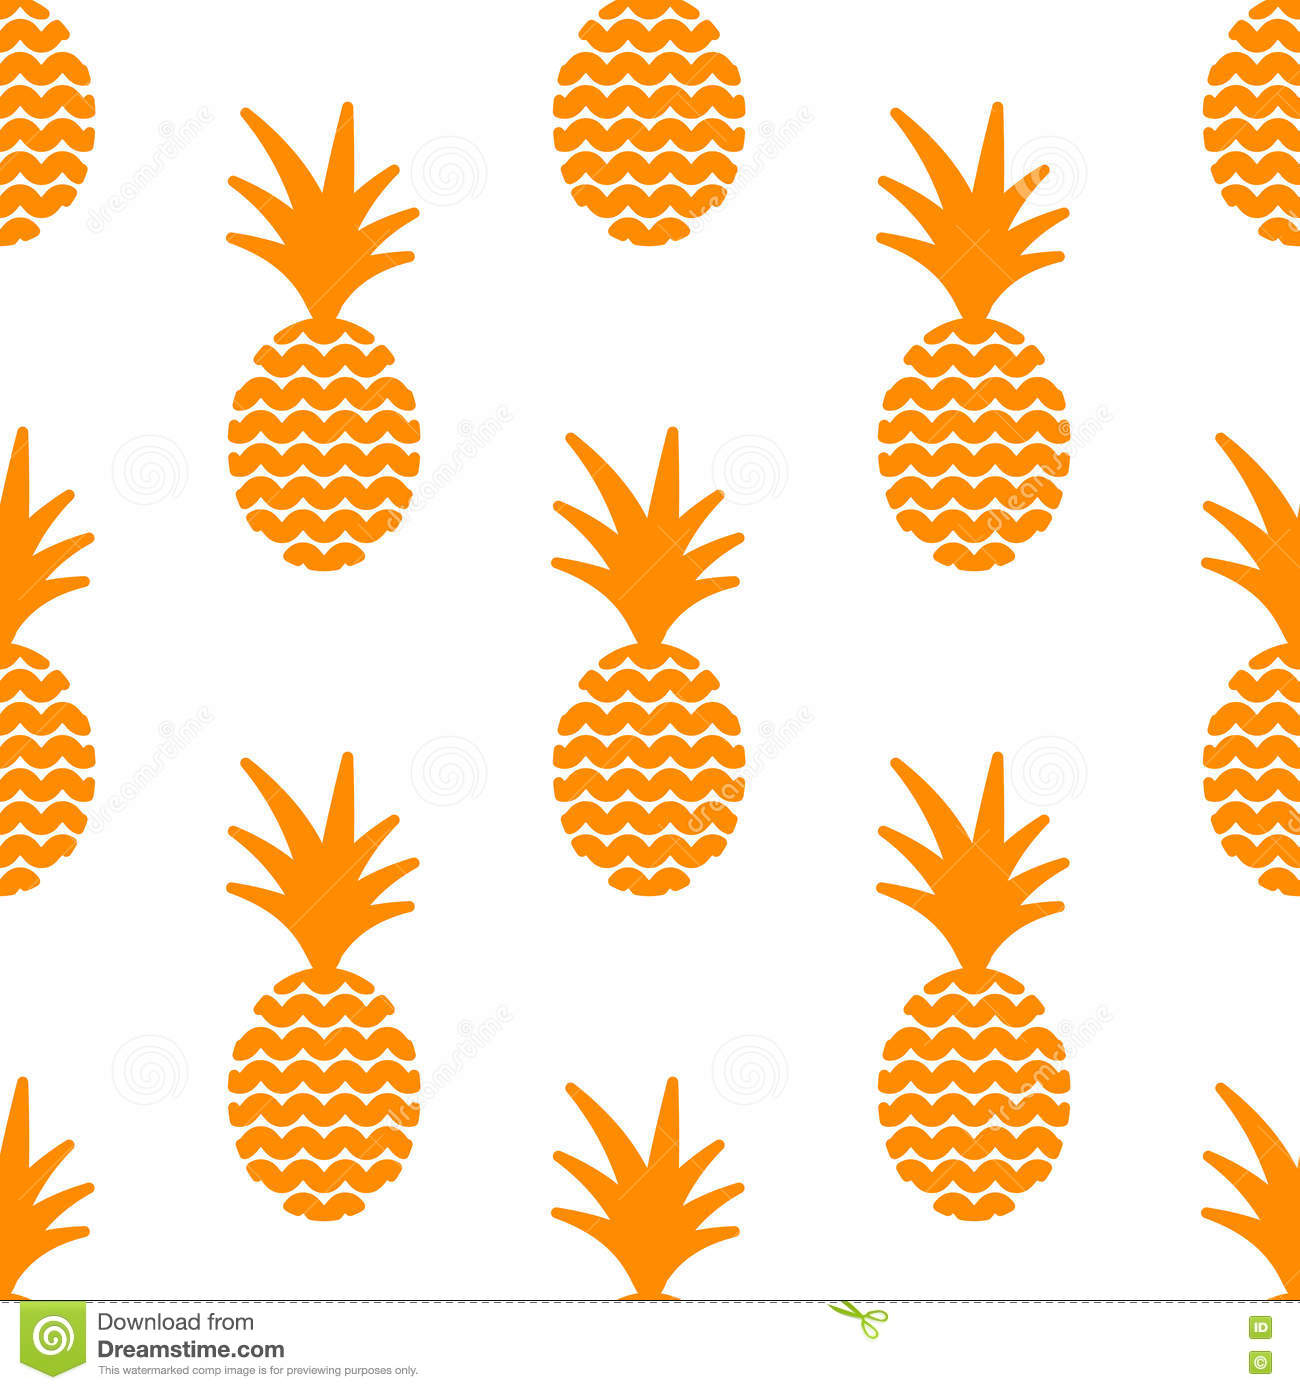 Best Wallpaper Macbook Pineapple - pineapple-simple-vetor-seamless-background-textile-pattern-fabric-orange-ananas-white-baby-apparel-linen-design-72368865  2018_782213.jpg